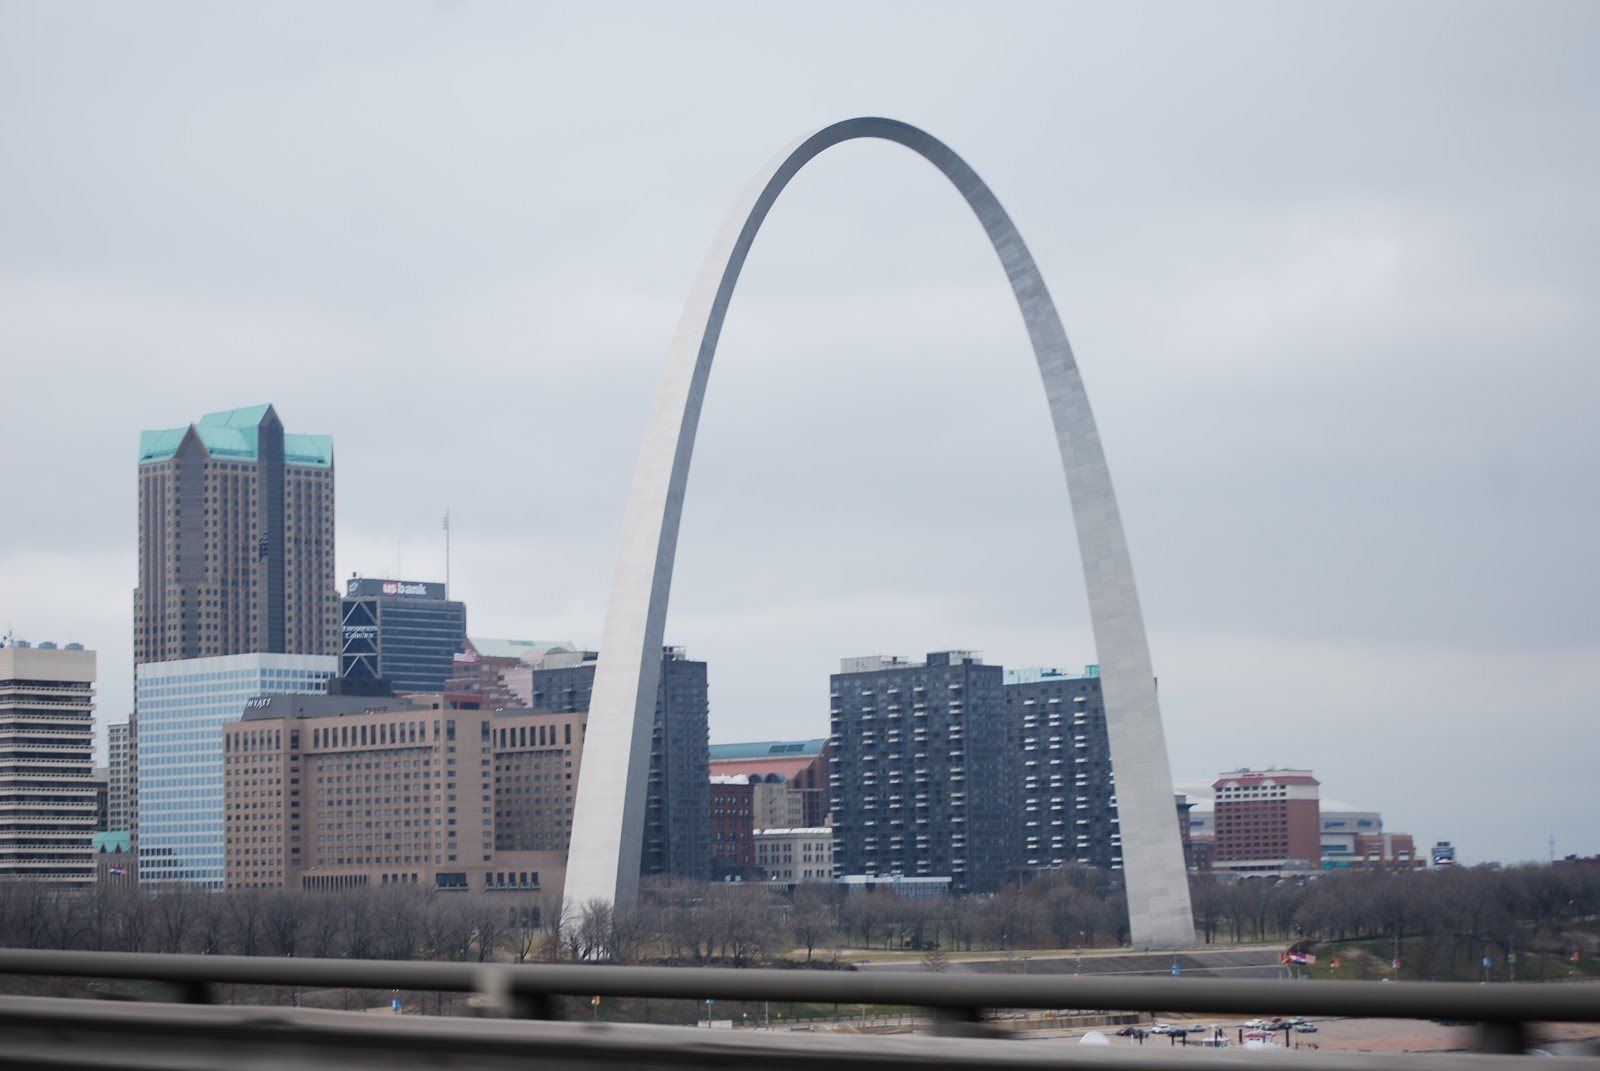 New madrid fault line predictions 2015 - St Louis Photo By Margie Kay